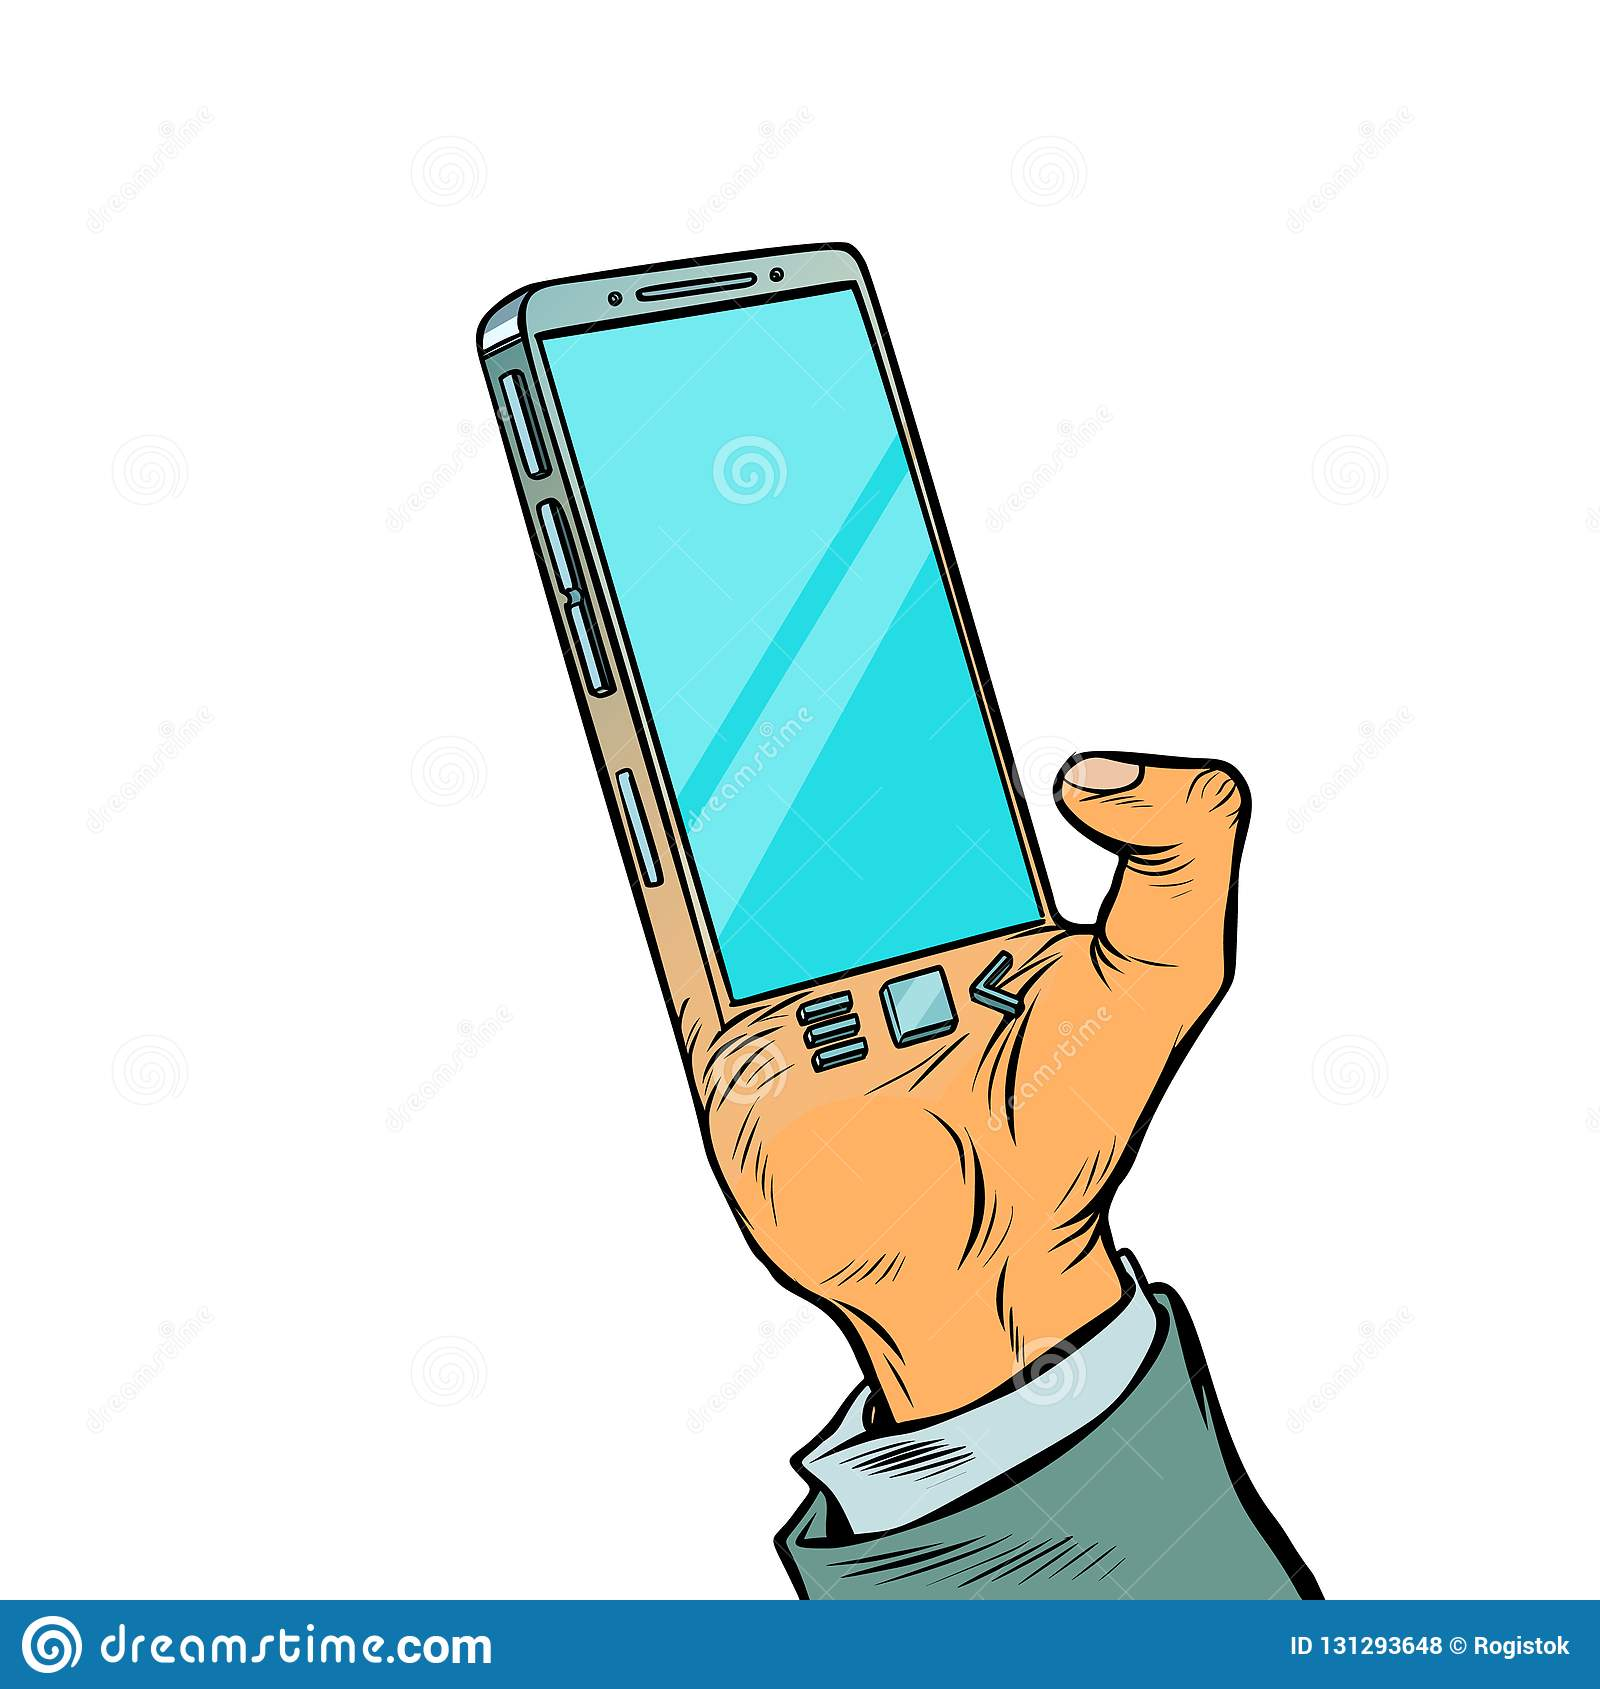 Smartphone Is Implanted In The Human Body  Biohacking Stock Vector